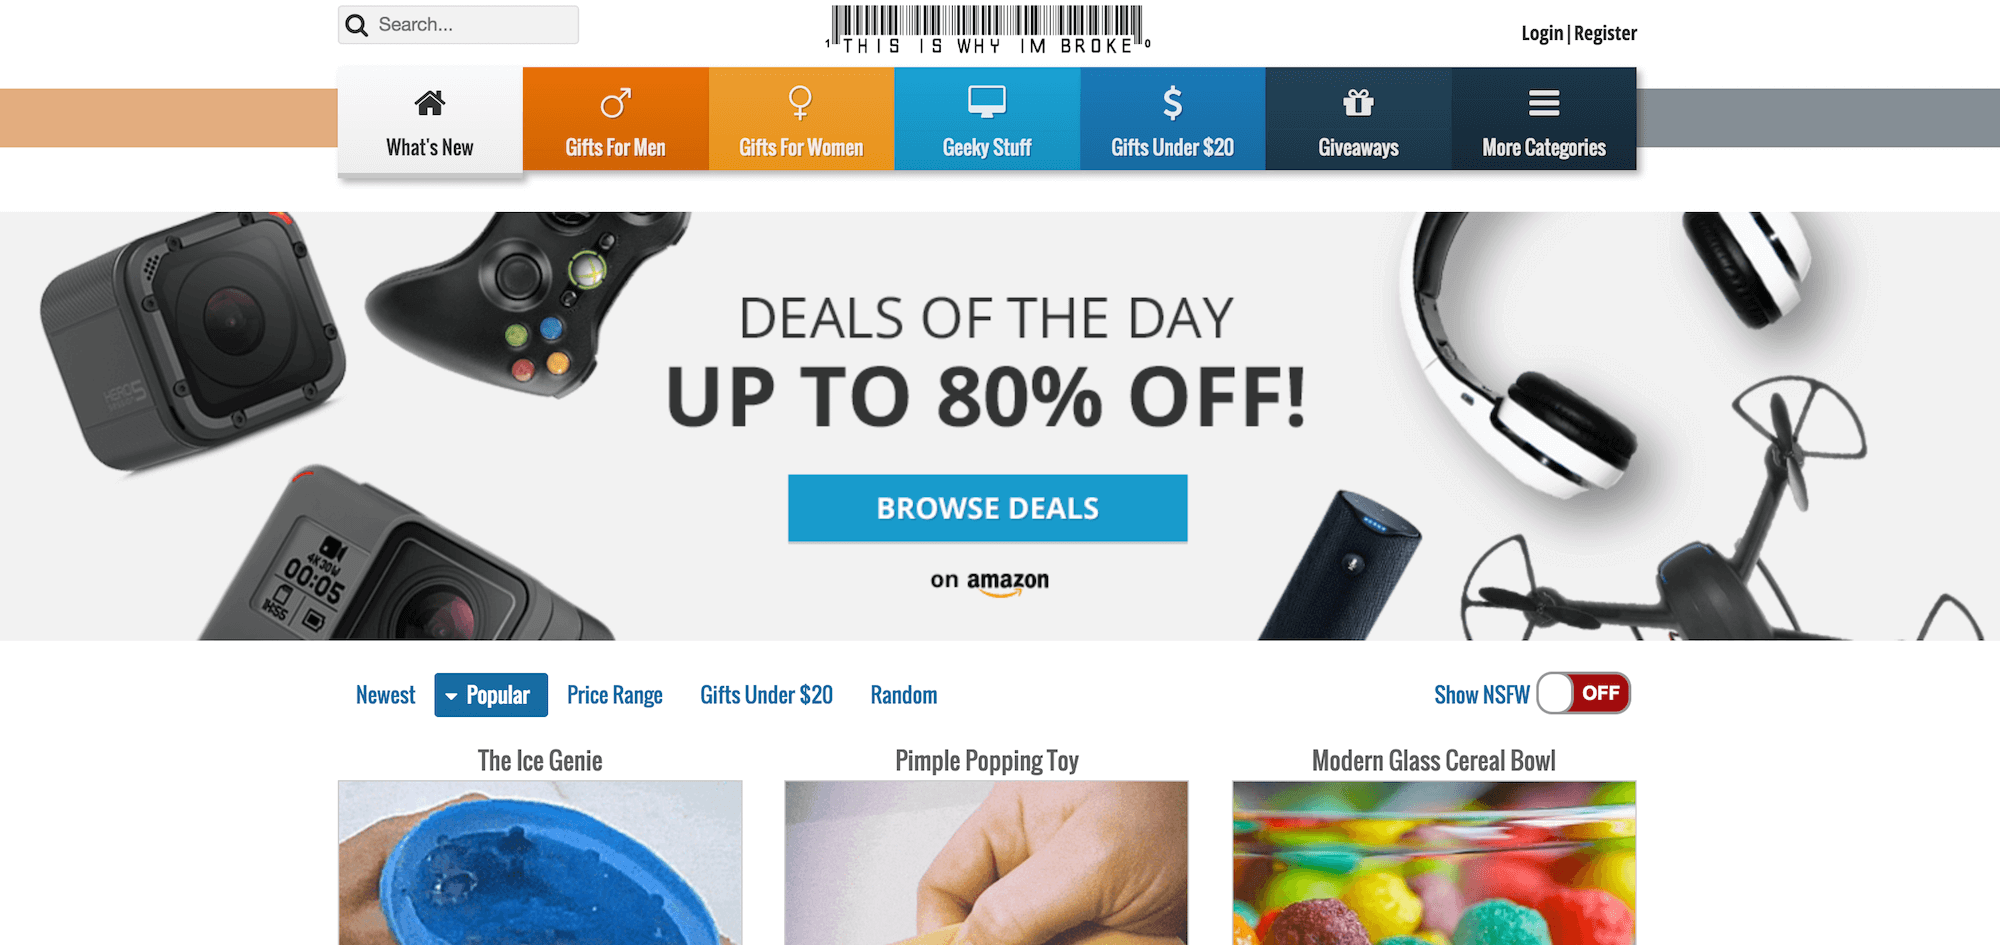 The This Is Why I'm Broke home page.